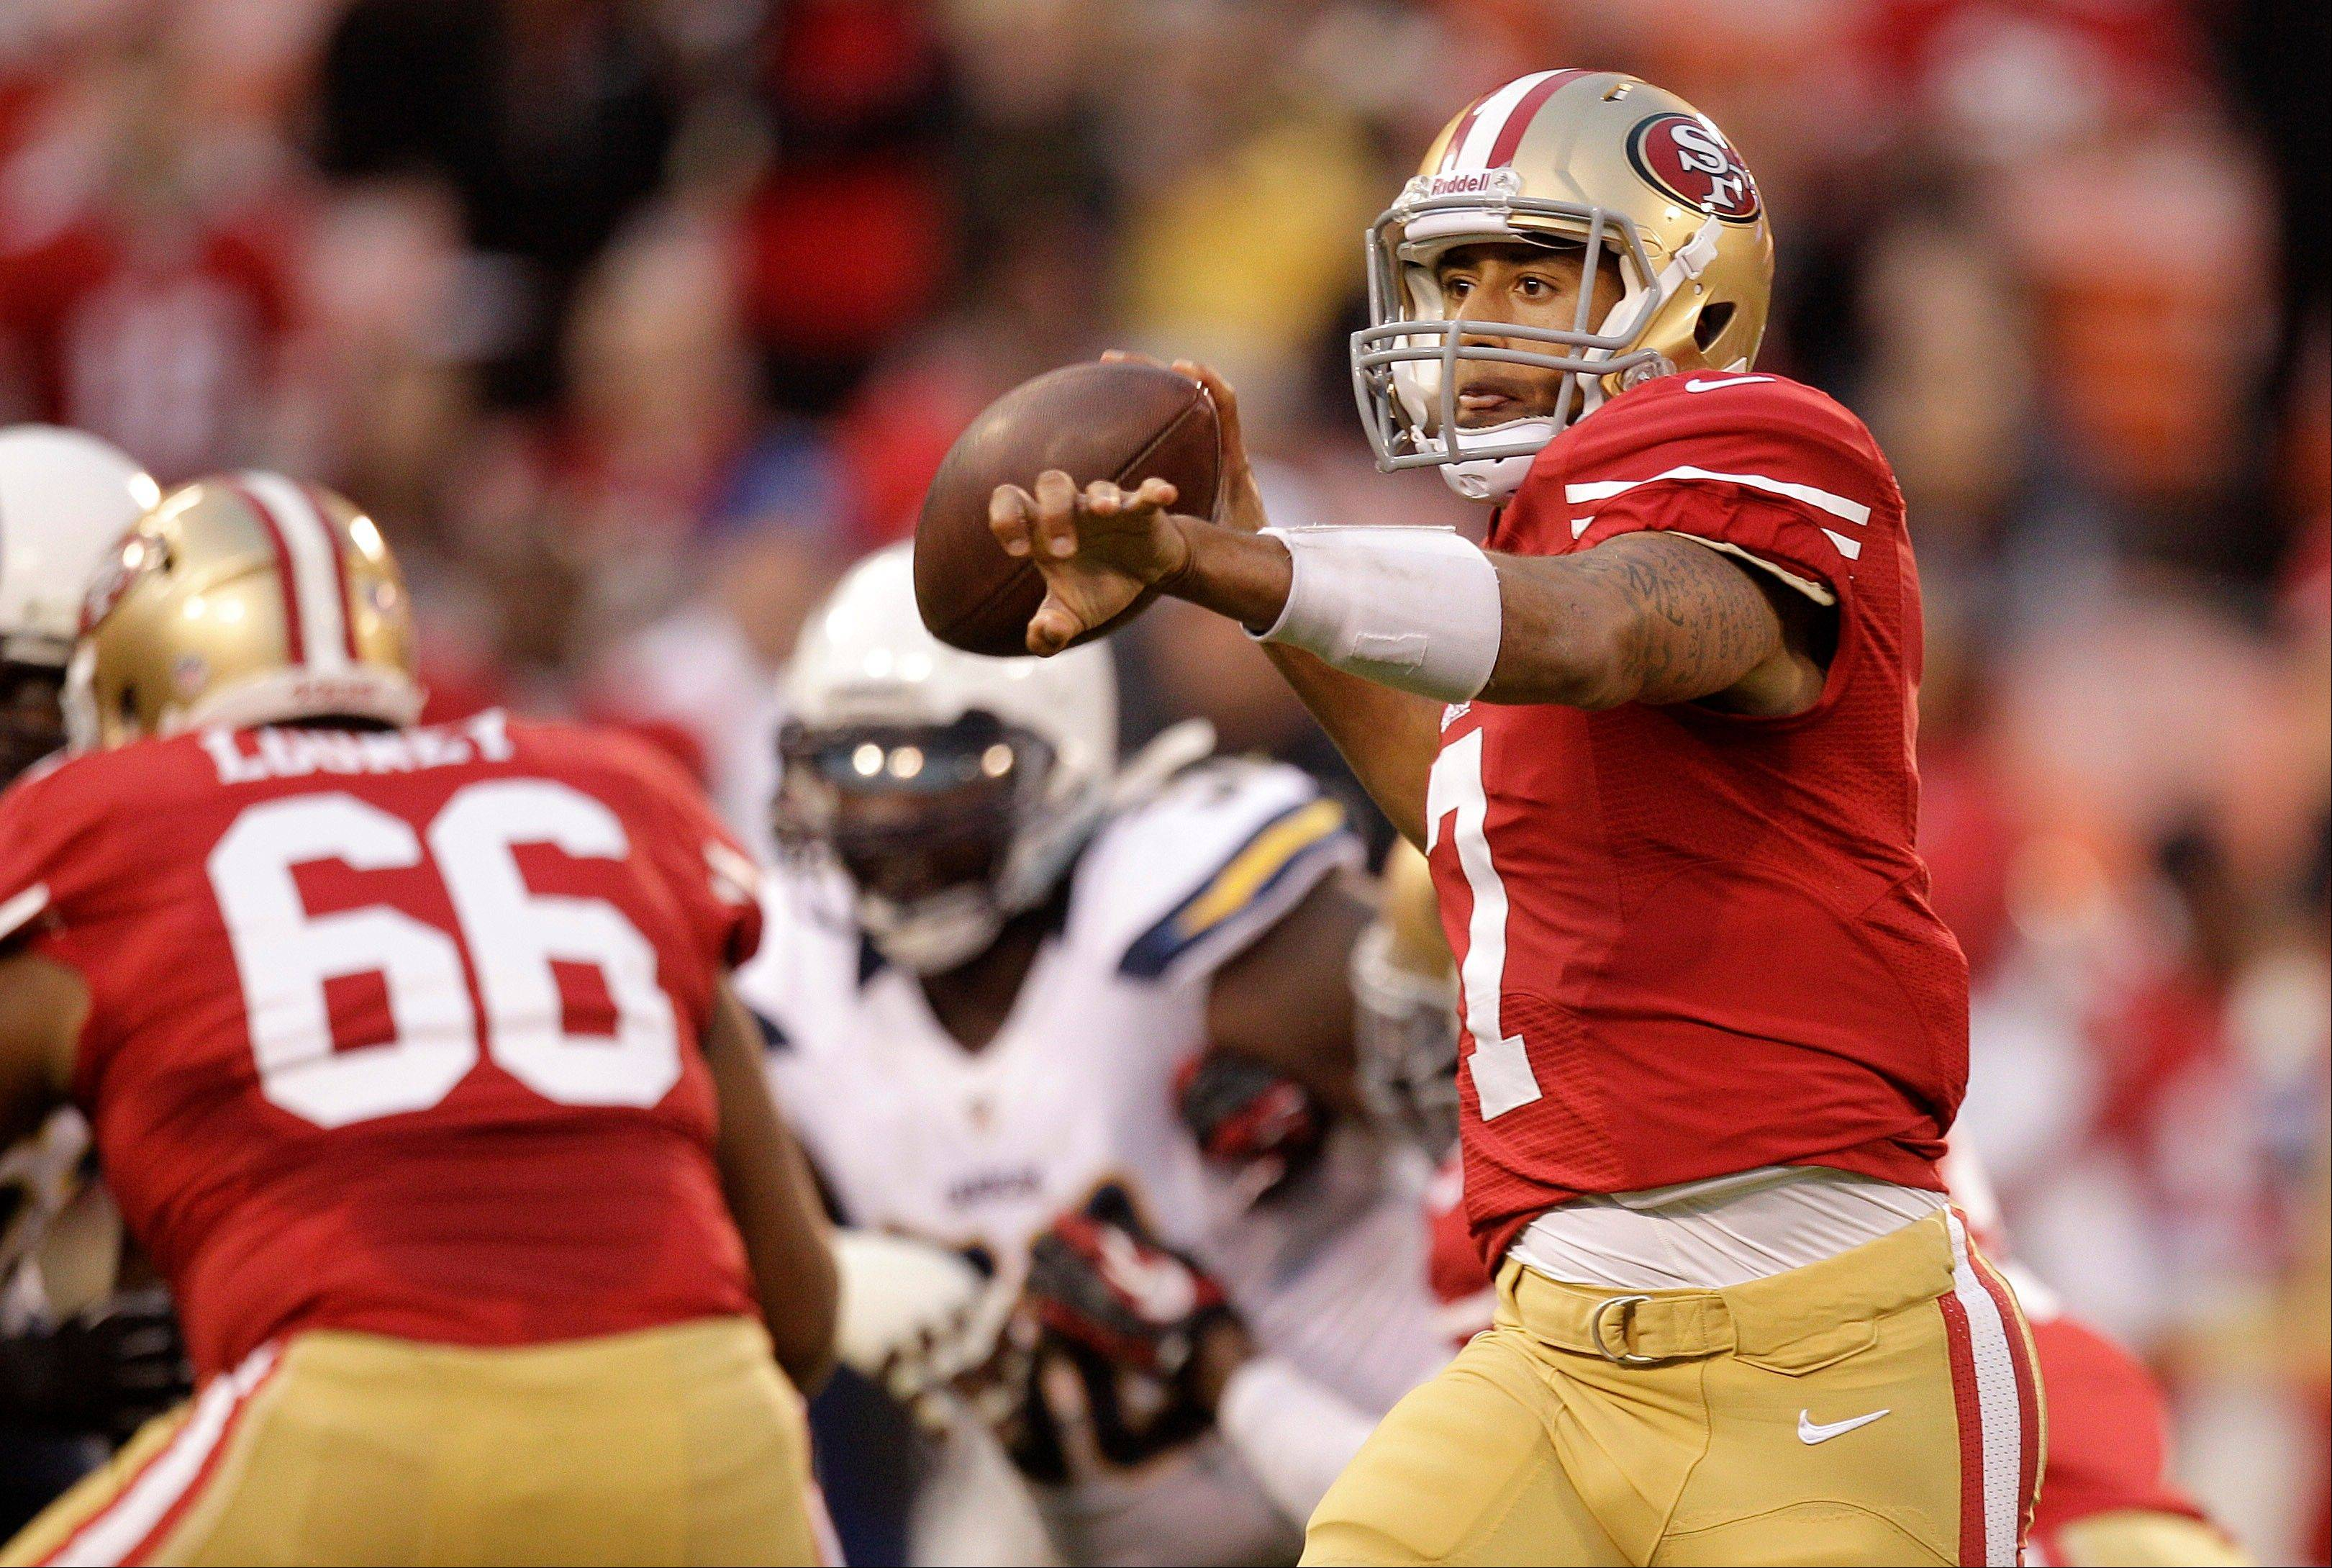 San Francisco 49ers quarterback Colin Kaepernick (7) passes against the San Diego Chargers during the first quarter of a preseason game Thursday in San Francisco.